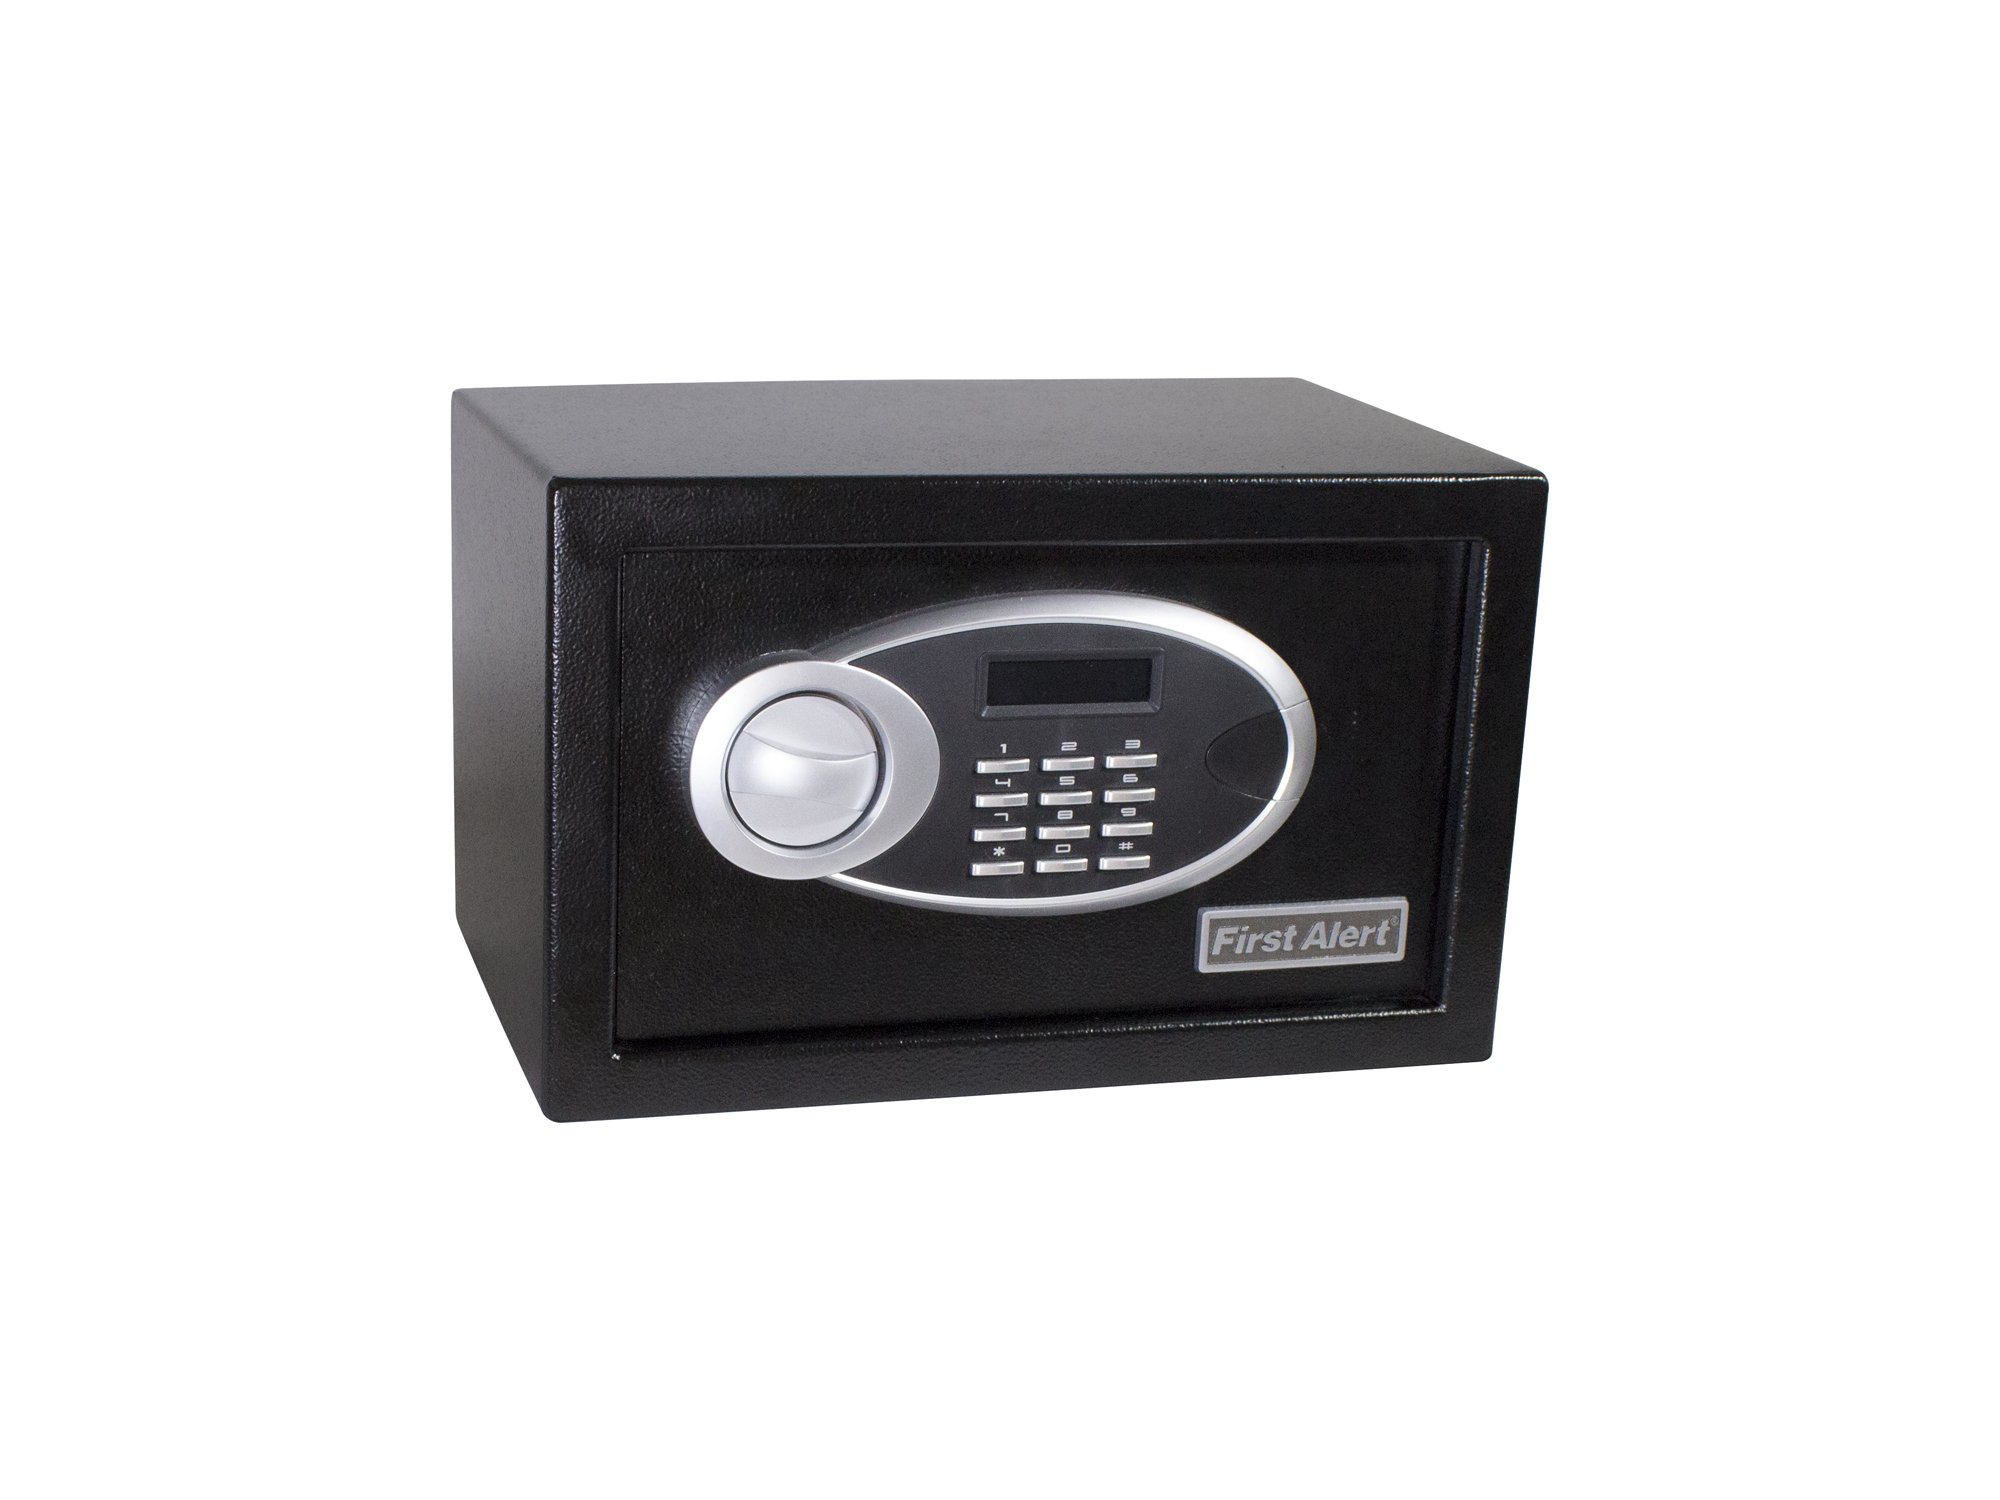 First Alert 4003DFB Anti-Theft Safe with Digital LOCK, .31 Cubic-Foot, Black